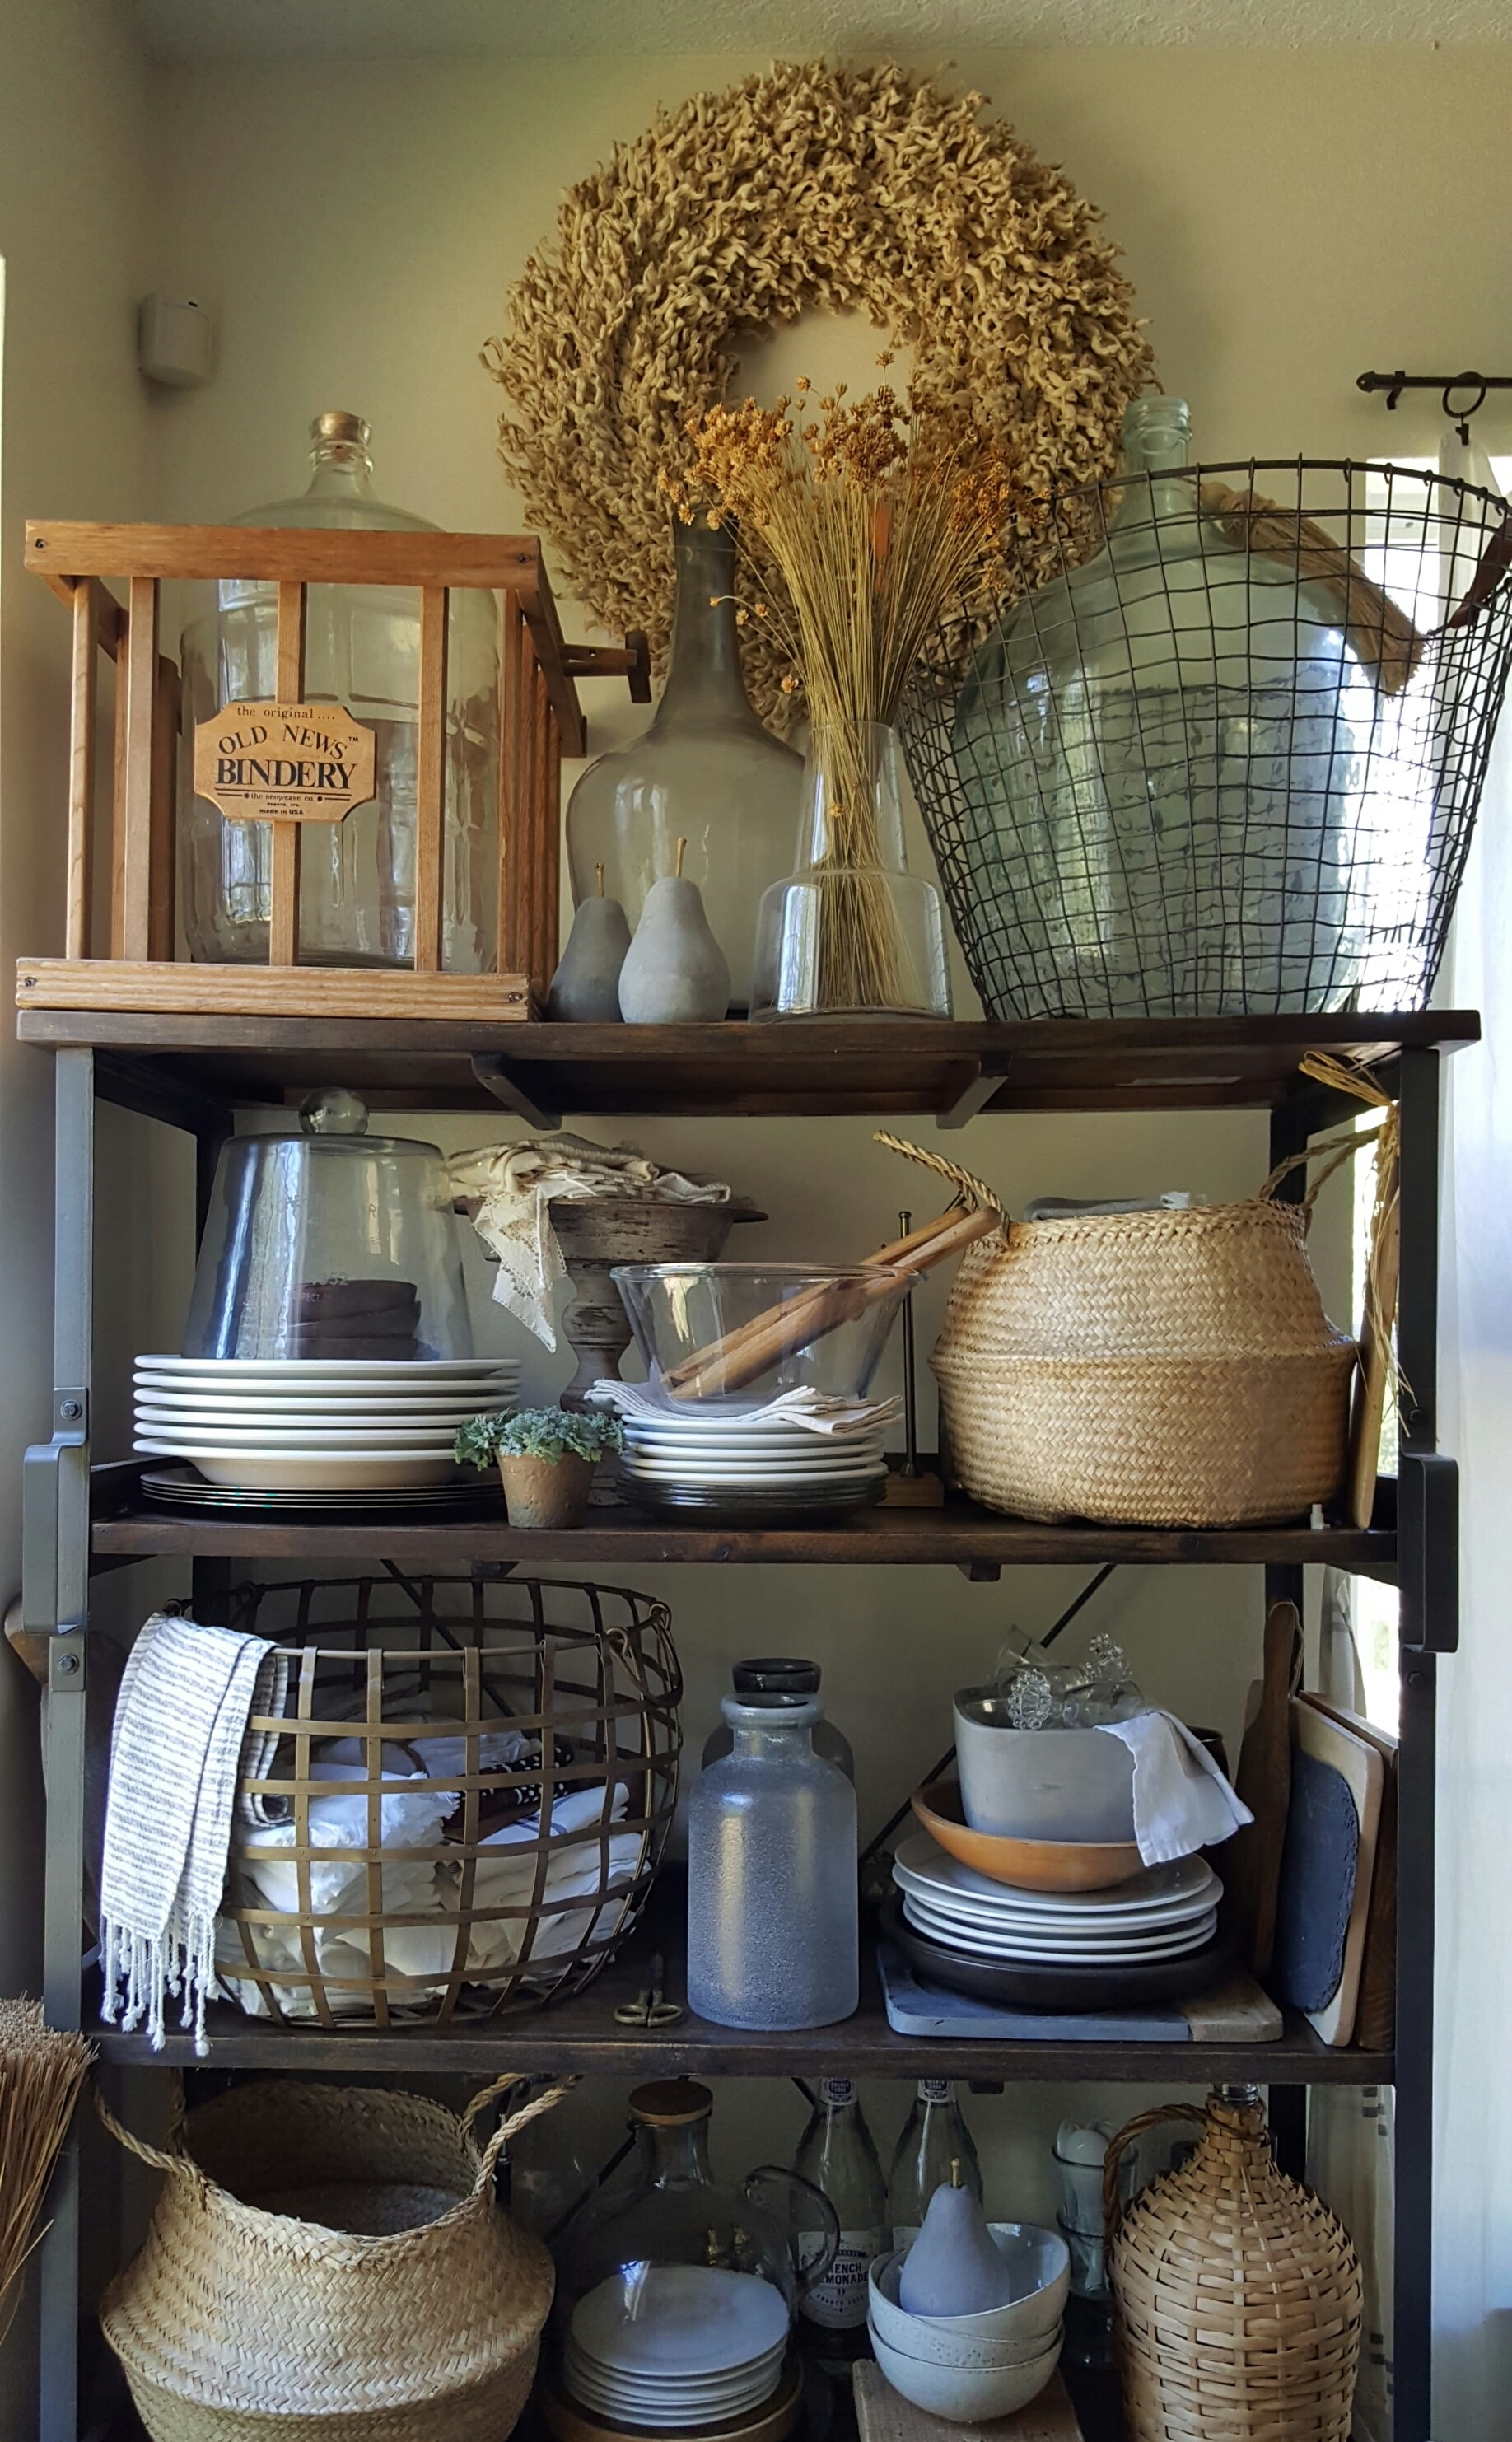 Eclectic Collected Vintage Modern Home Tour - One Room Challenge White Kitchen Makeover - Open Farmhouse Shelves Decor